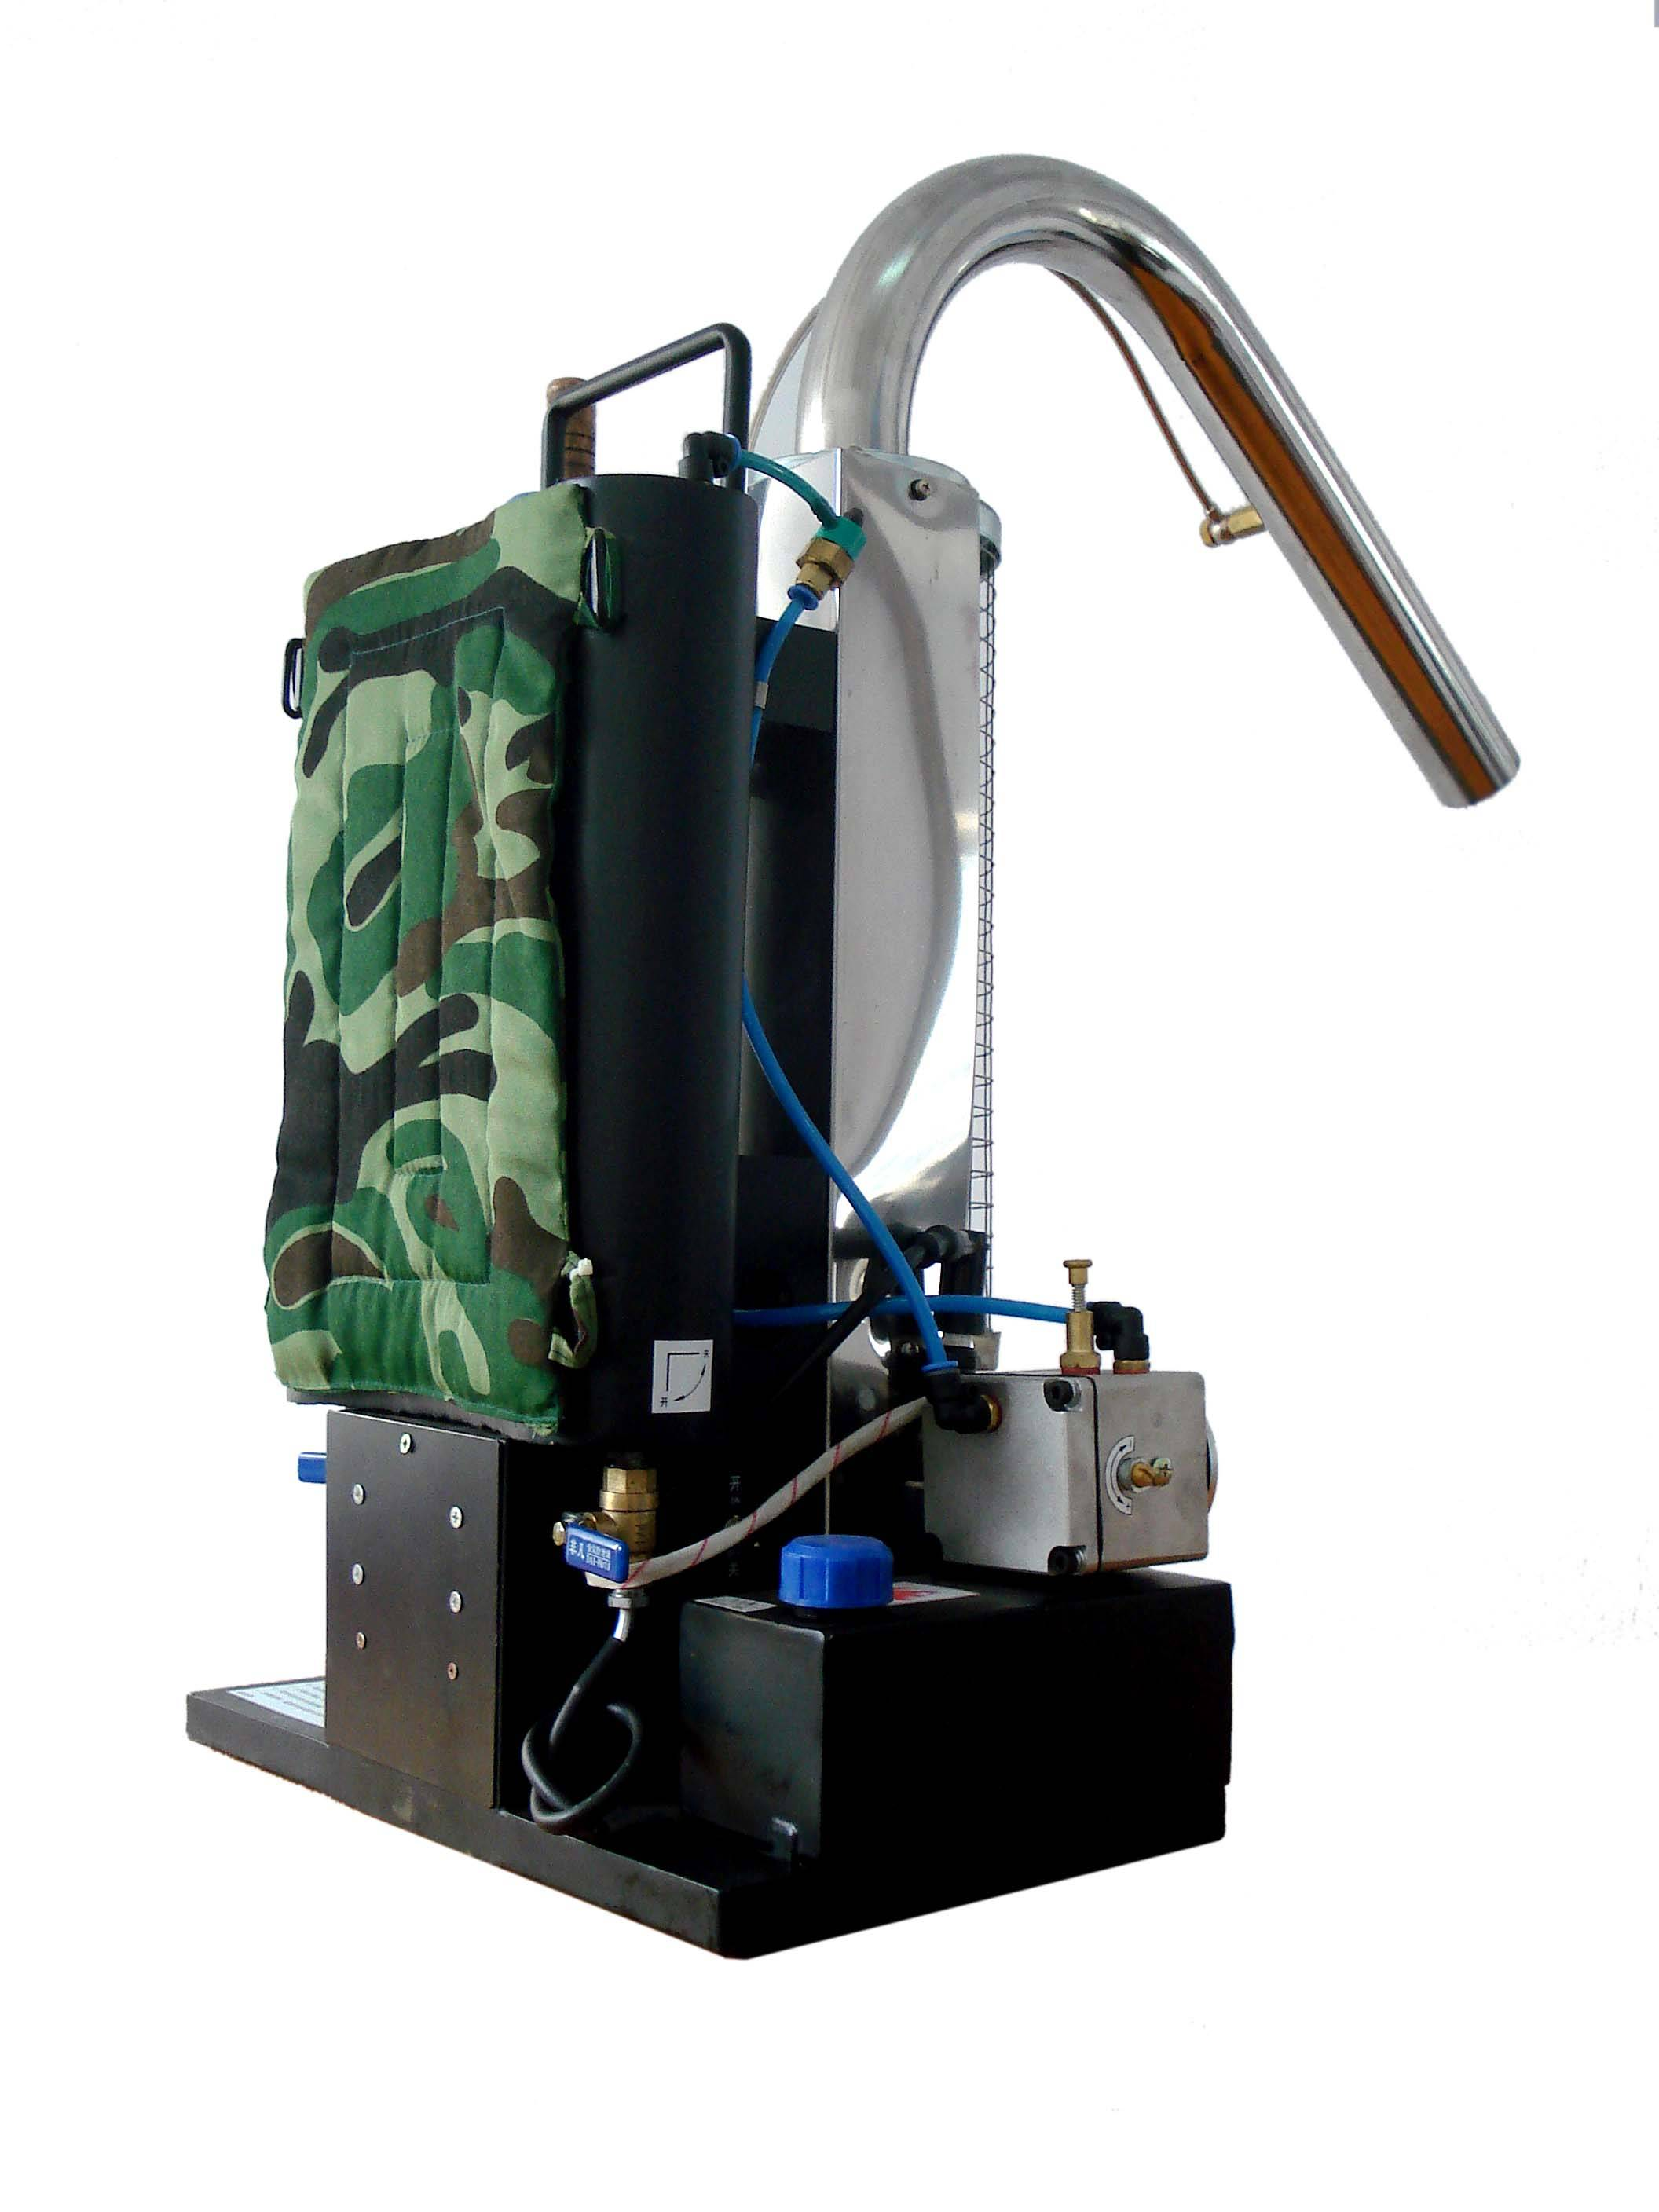 Knapsack Sprayer Power Sprayer Fogging Machine Chemical fogger Chemical sprayer